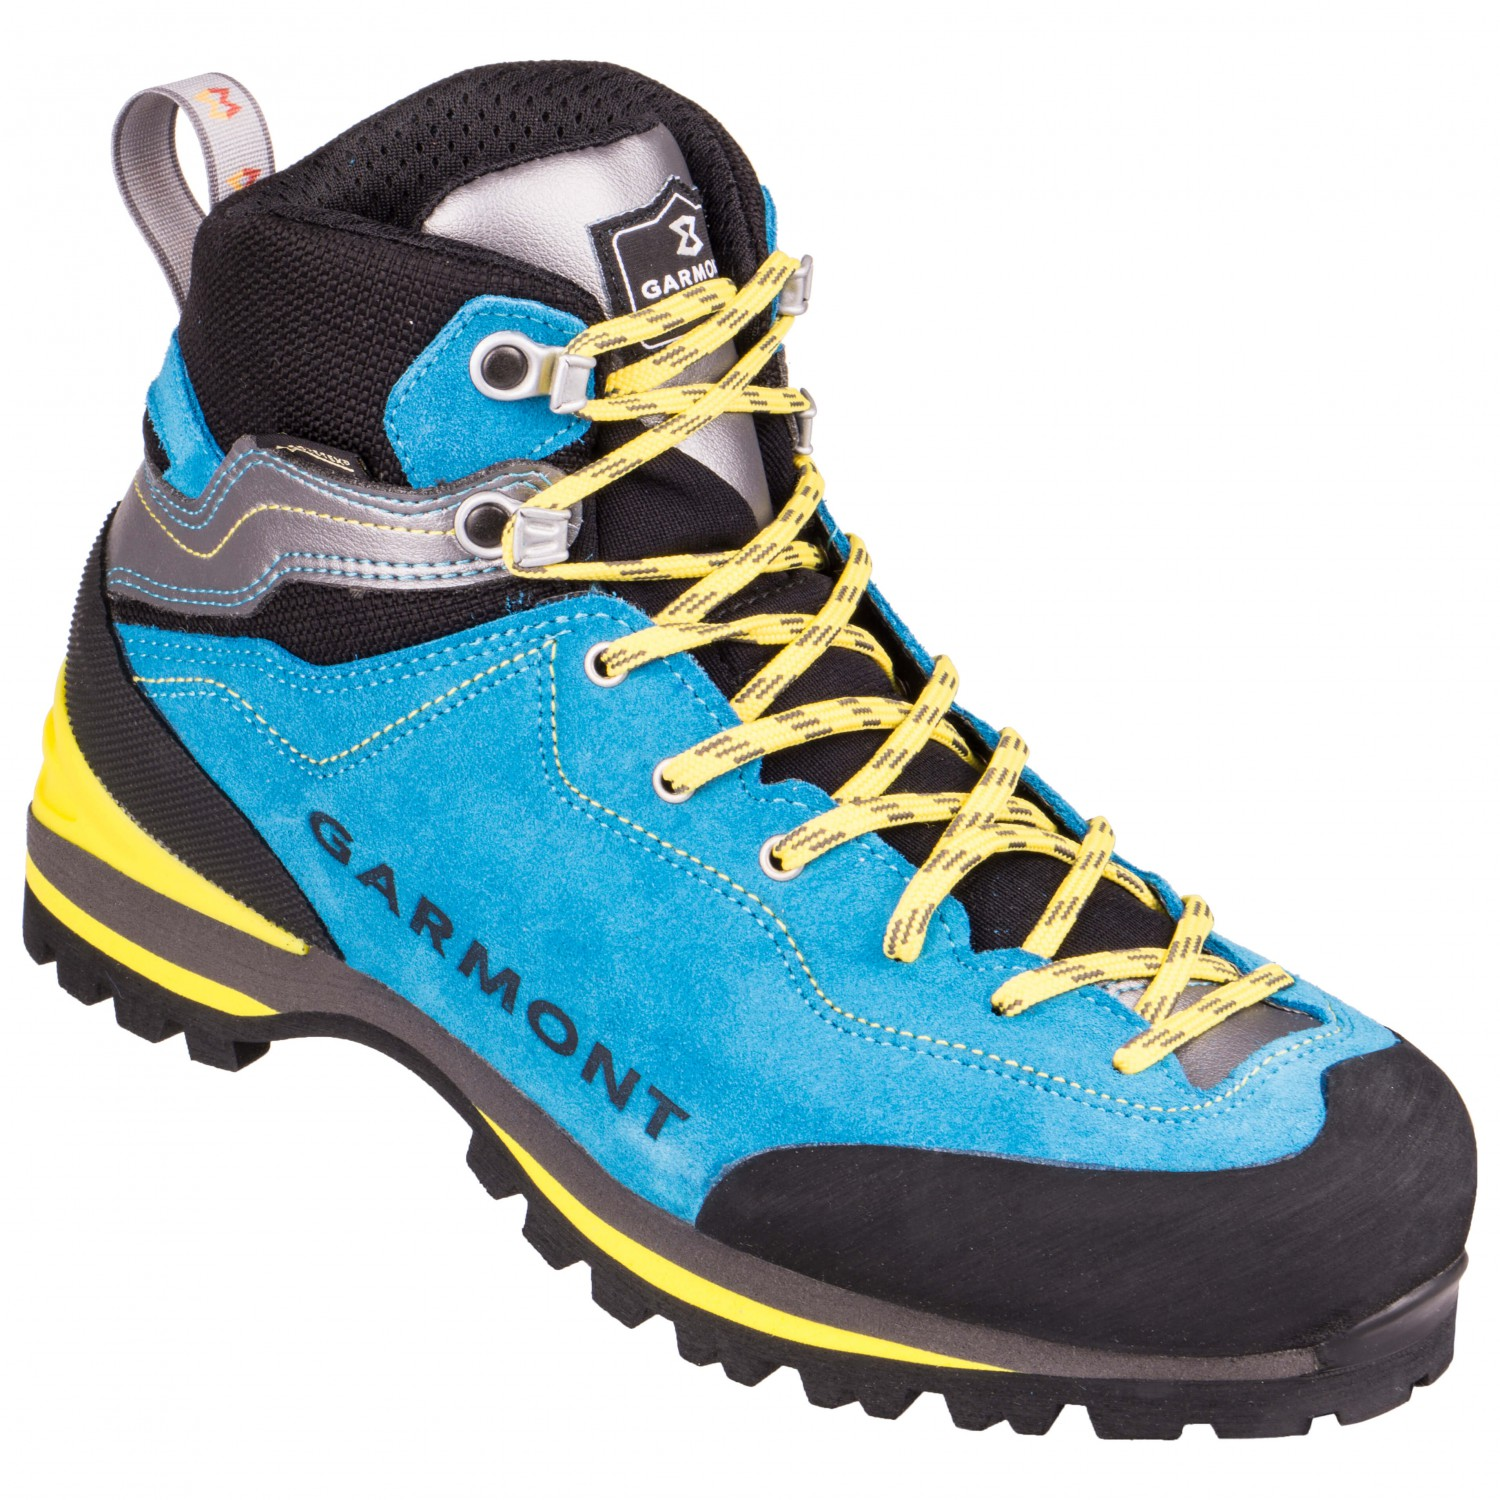 Garmont - Ascent GTX - Mountaineering boots ... 2e6cedac3a5